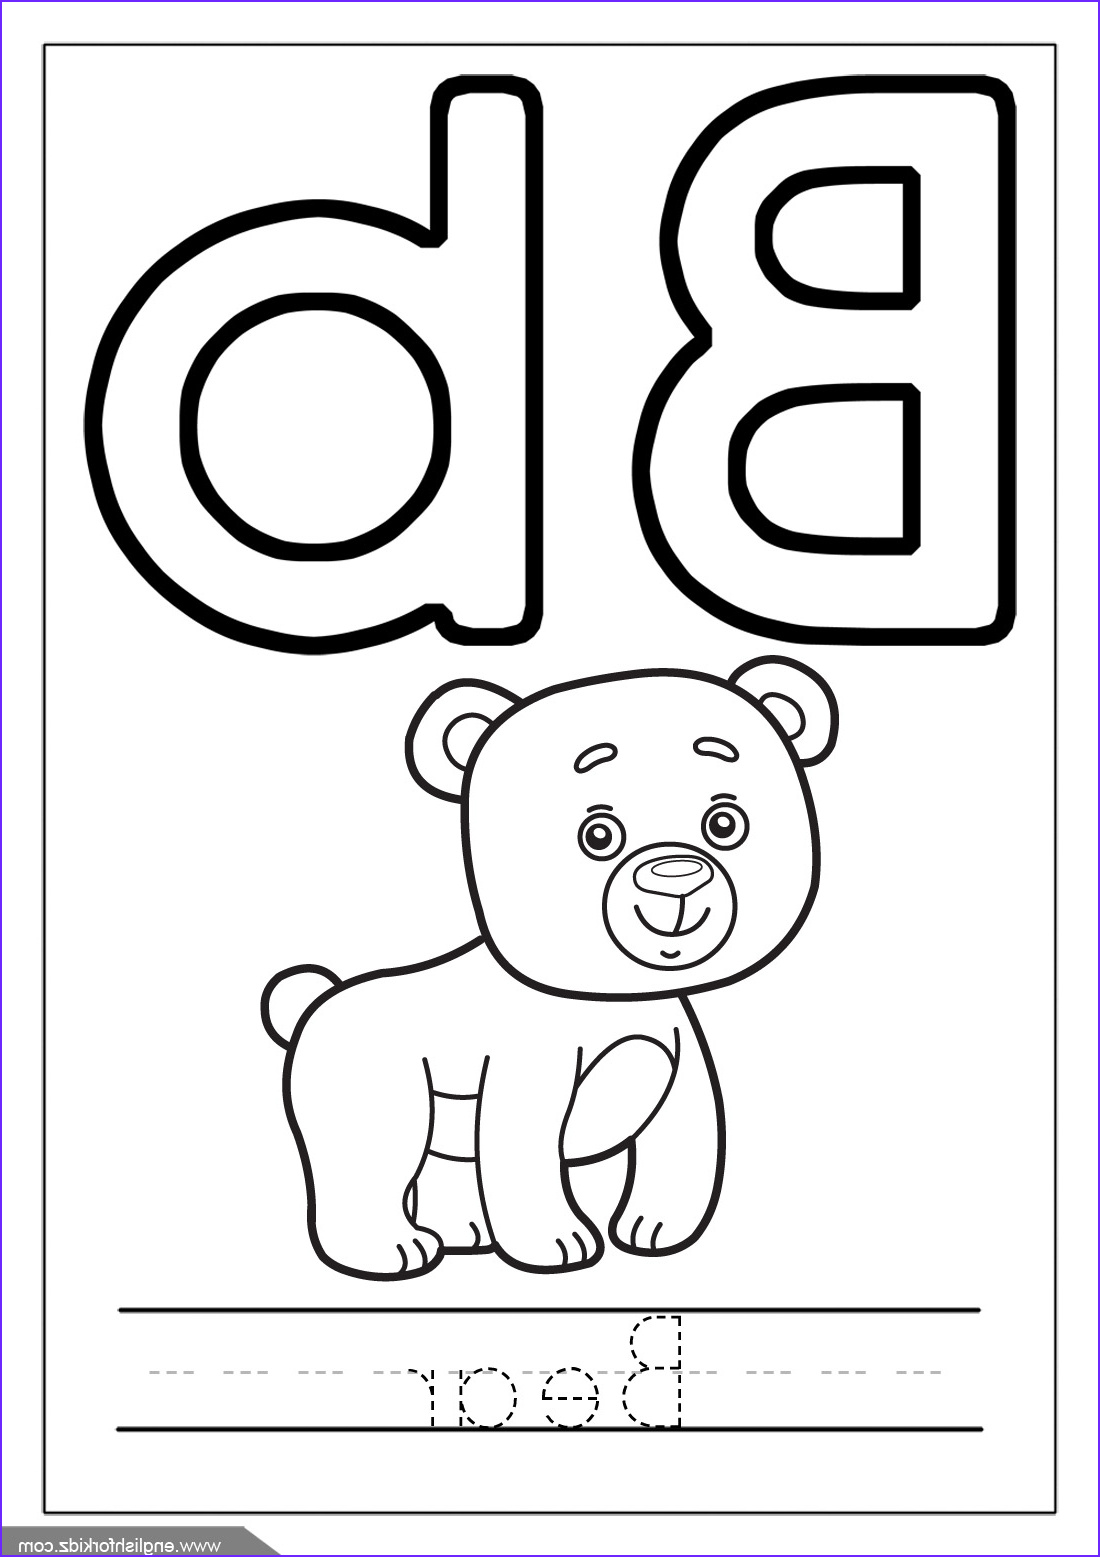 printable alphabet coloring pages letters influenza a virus subtype h5n1 j